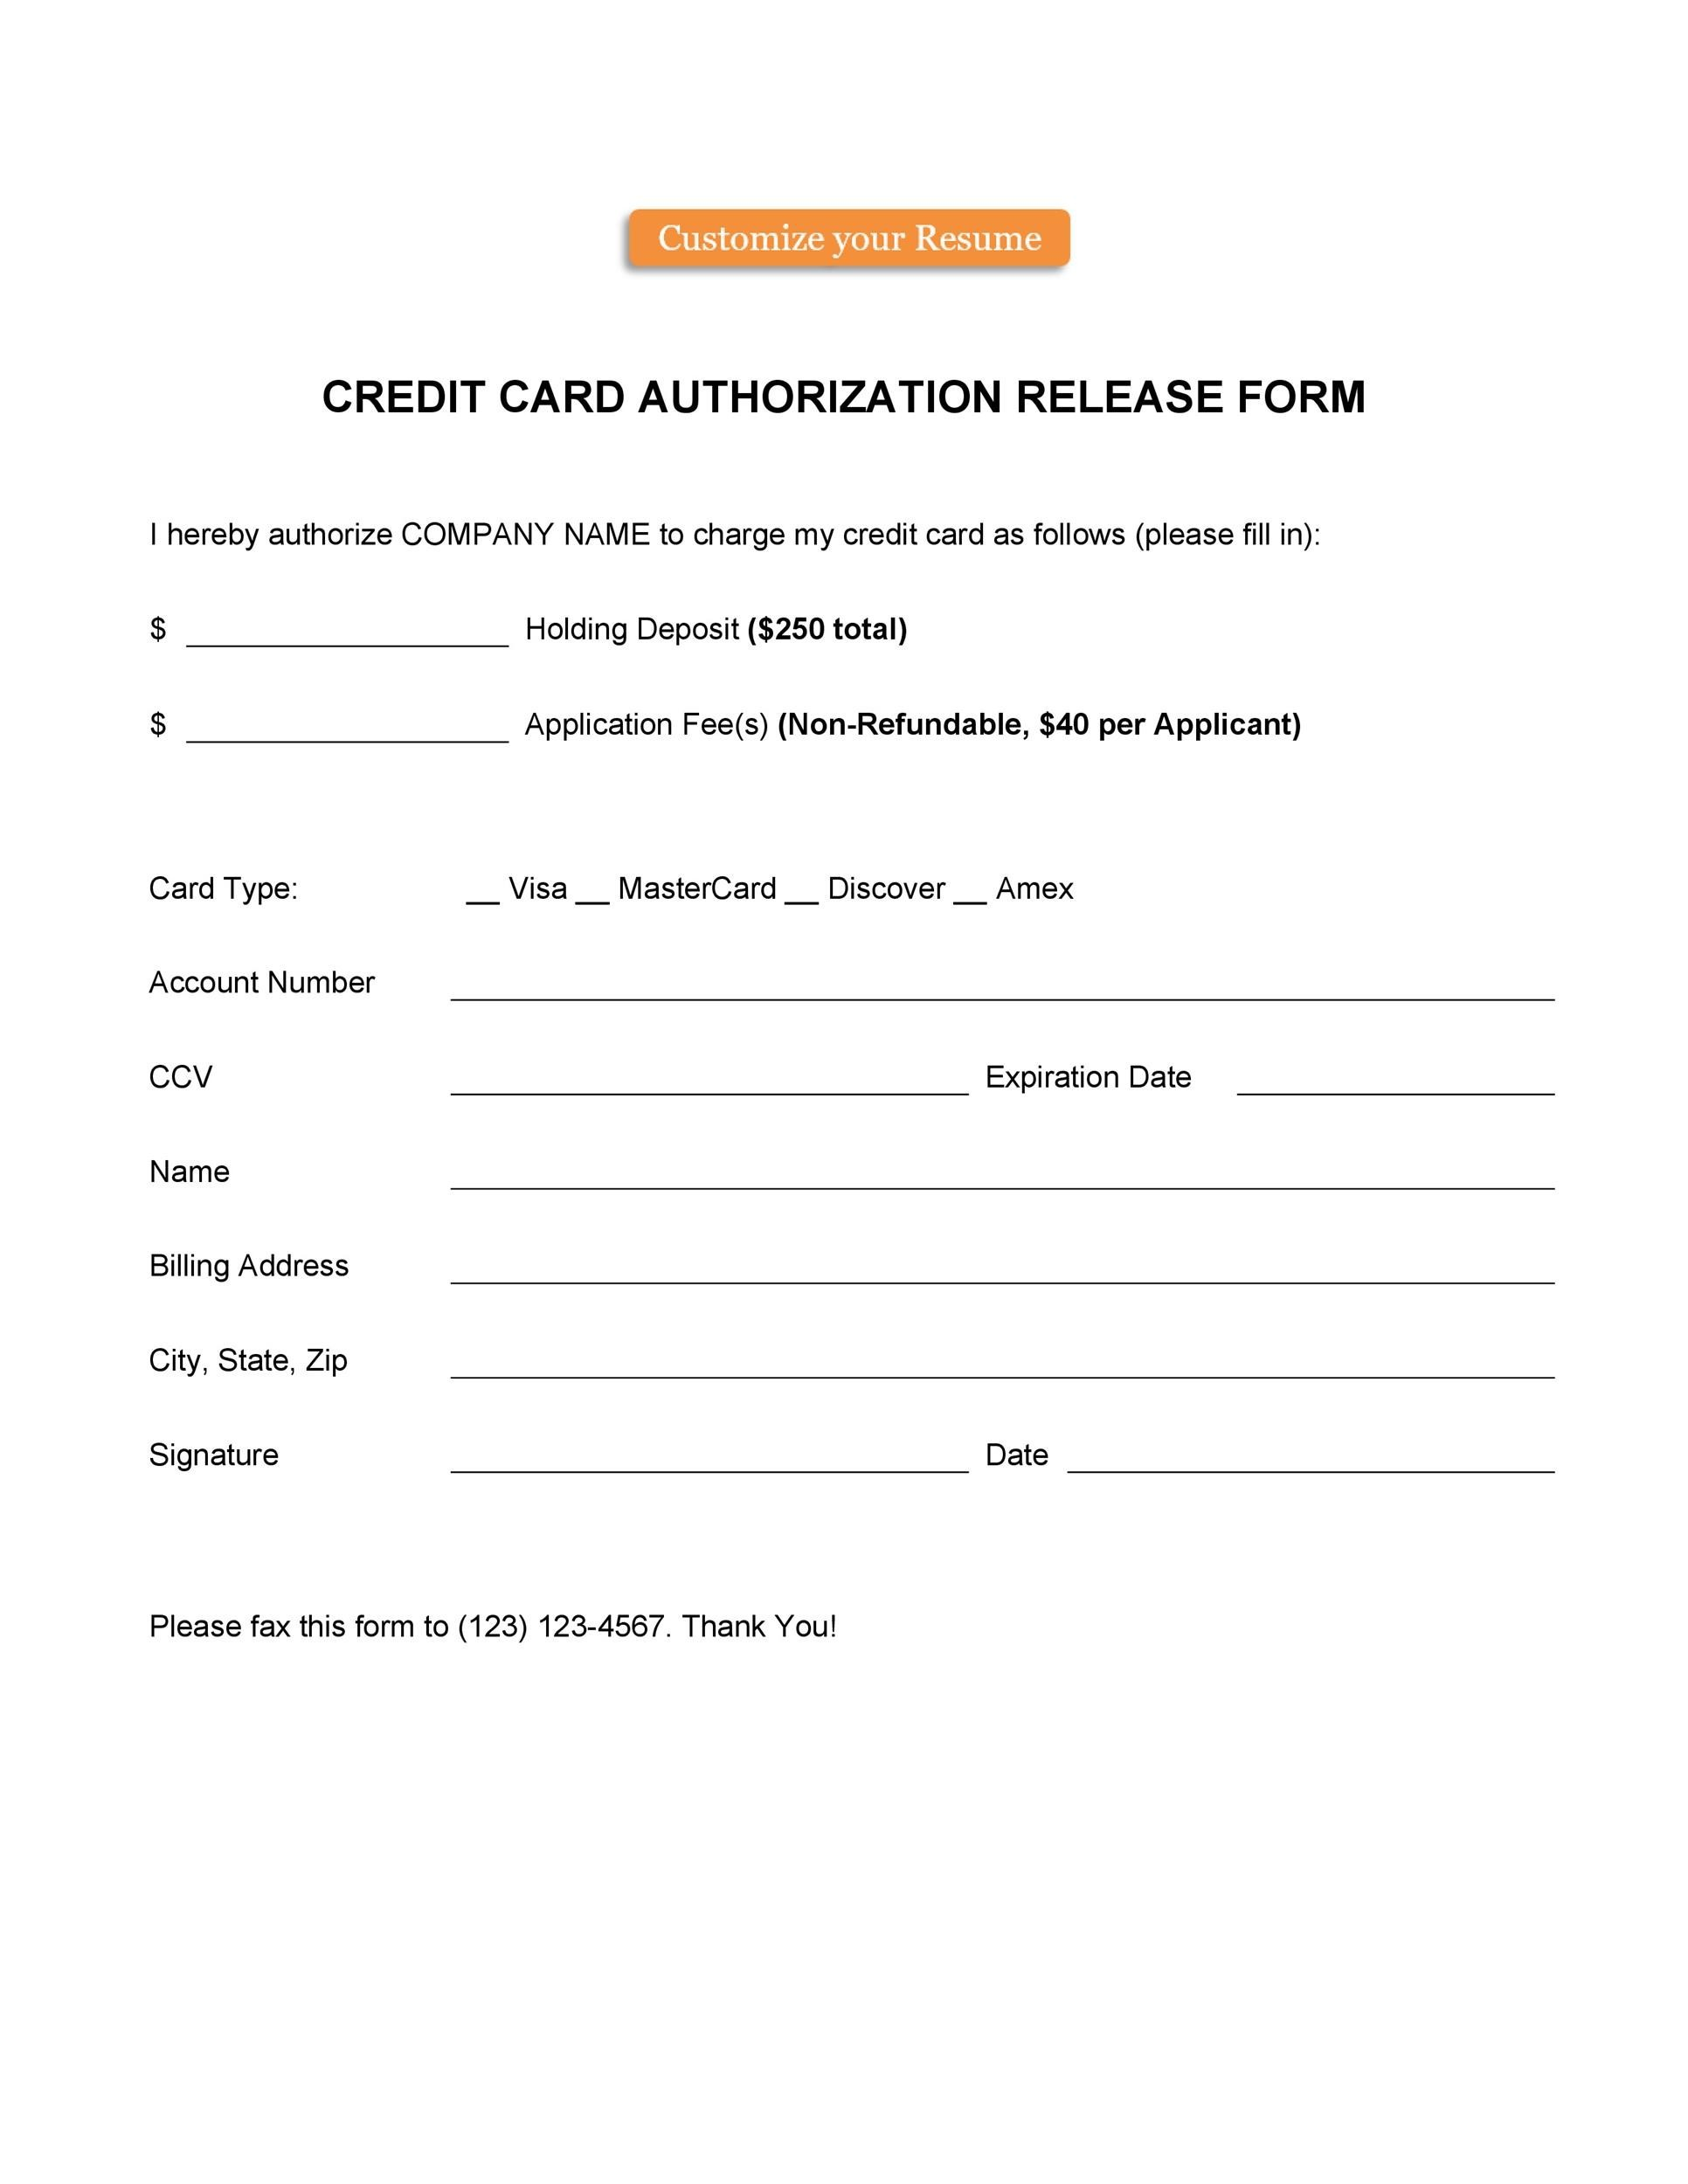 Schedule your payment to be automatically deducted from your bank account, or charged to your credit. 43 Credit Card Authorization Forms Templates Ready To Use